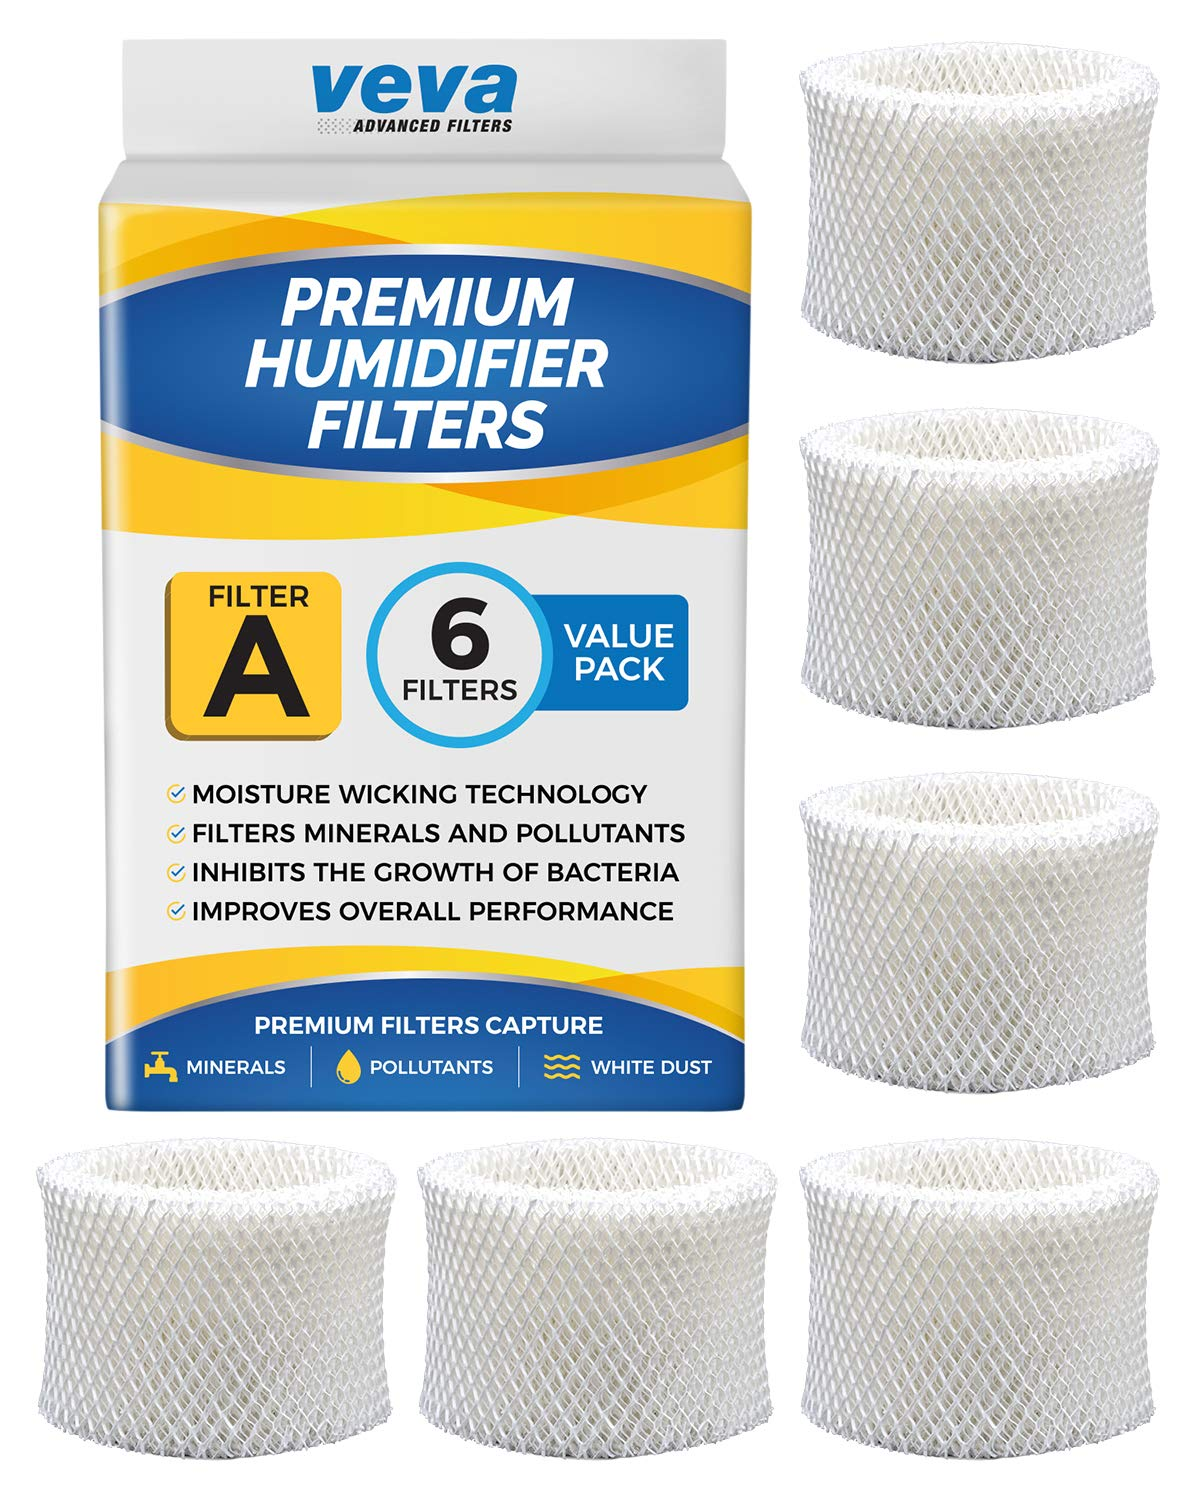 VEVA 6 Pack Premium Humidifier Filters Replacement for HW Filter A, HAC-504, HAC-504AW, HCM 350 and Other Cool Mist Models by VEVA